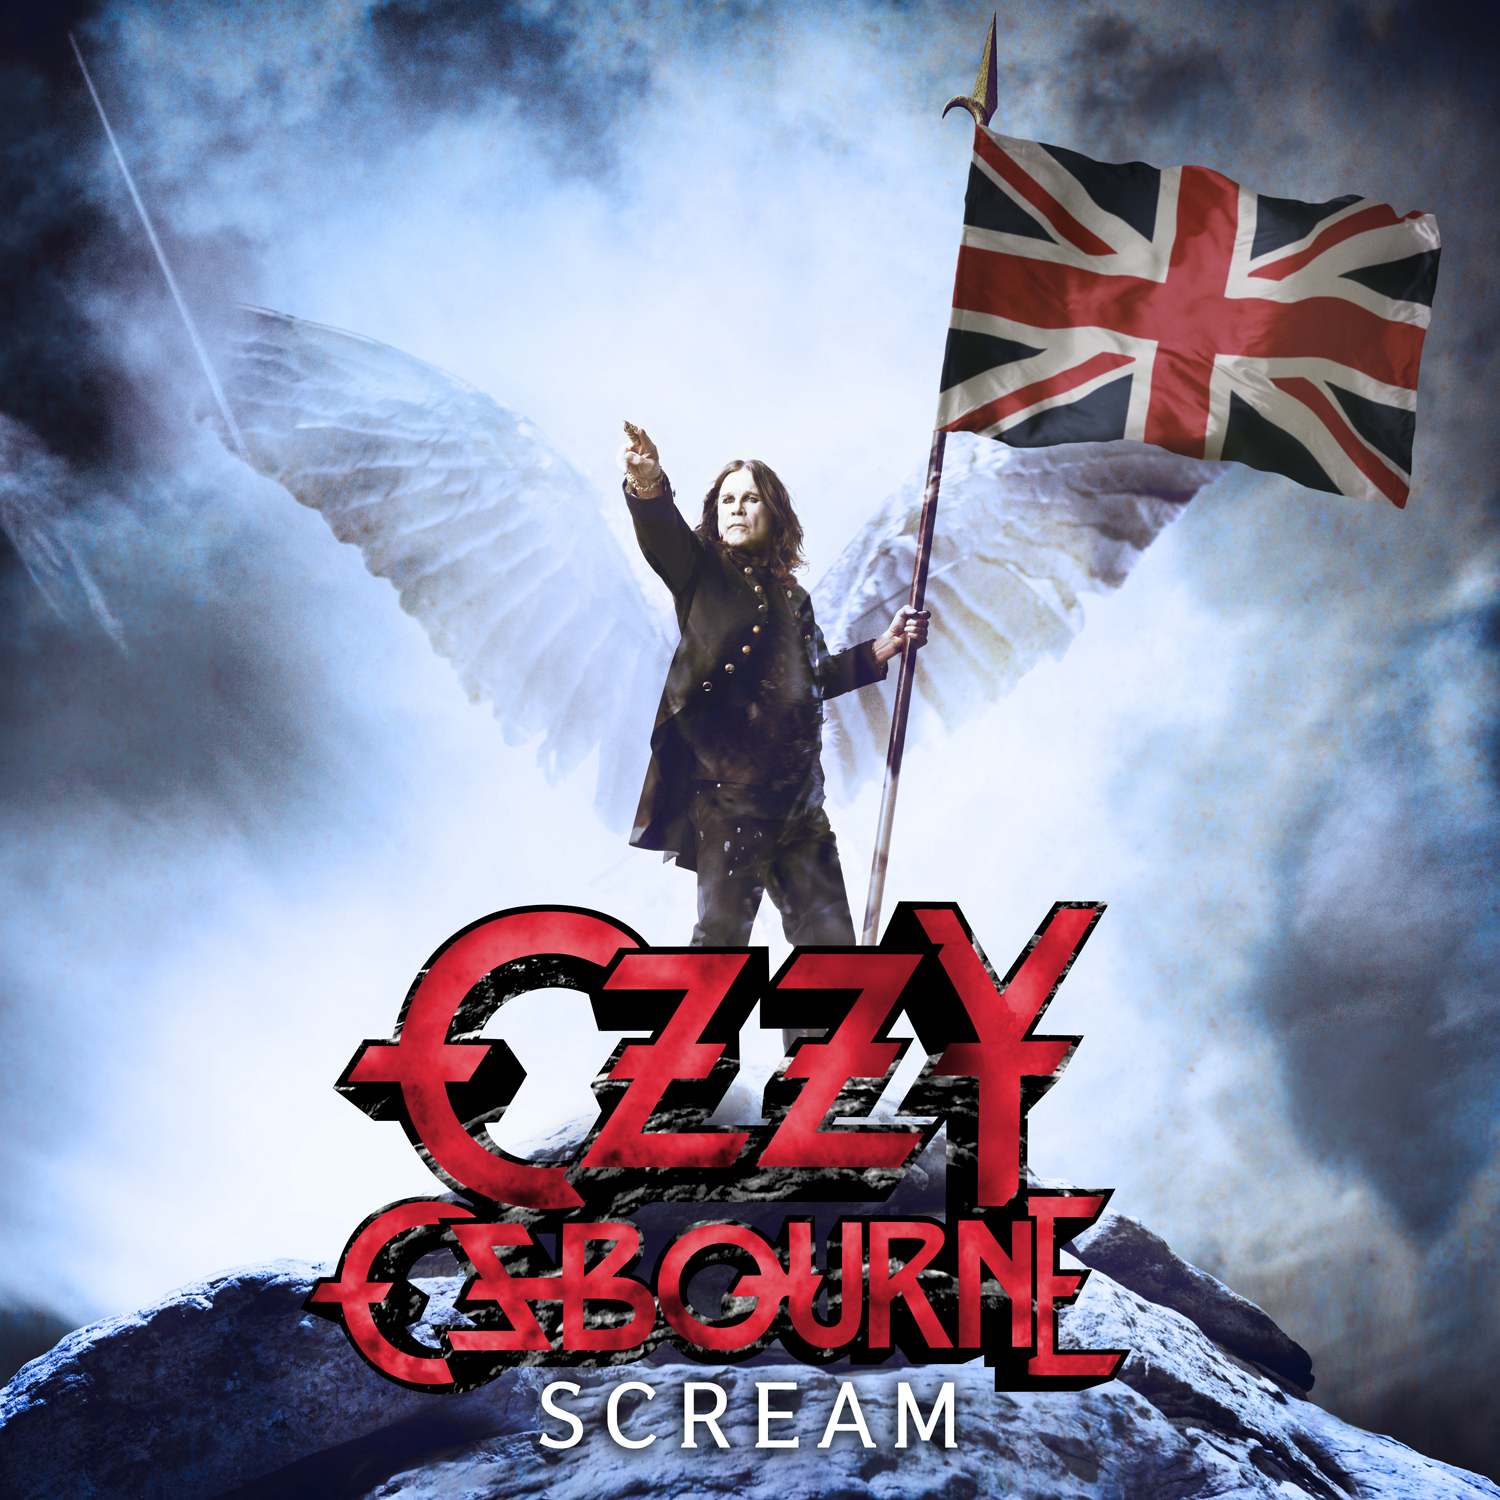 OO_SCREAM20Deluxe_Final_UK